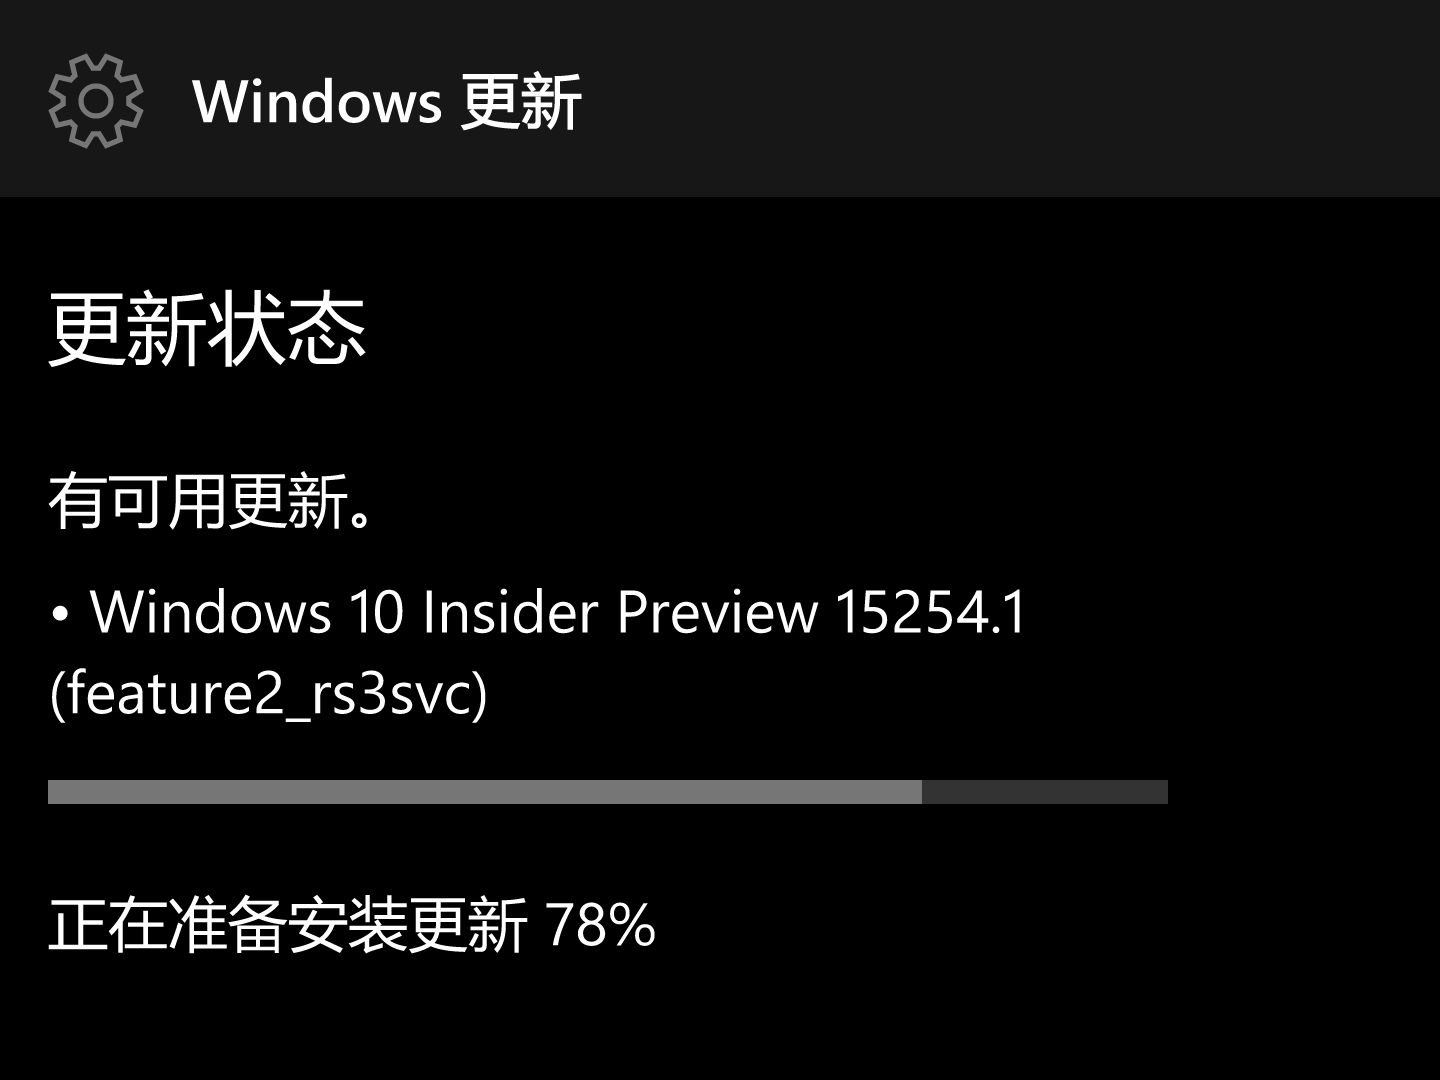 microsoft lumia 950 updates PingWest